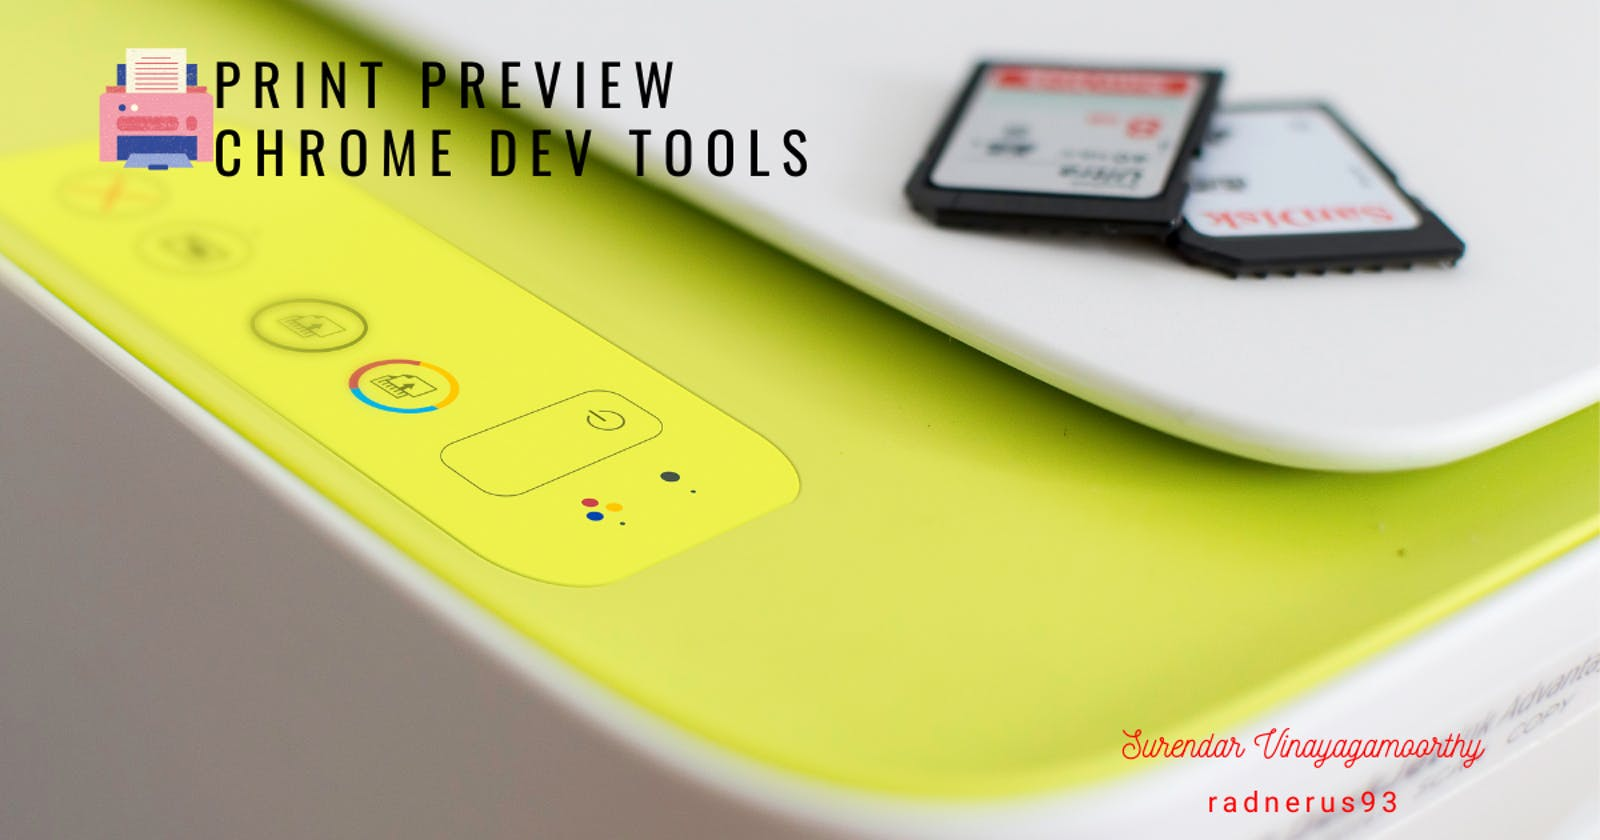 Designing the Print Preview - Chrome Dev Tools